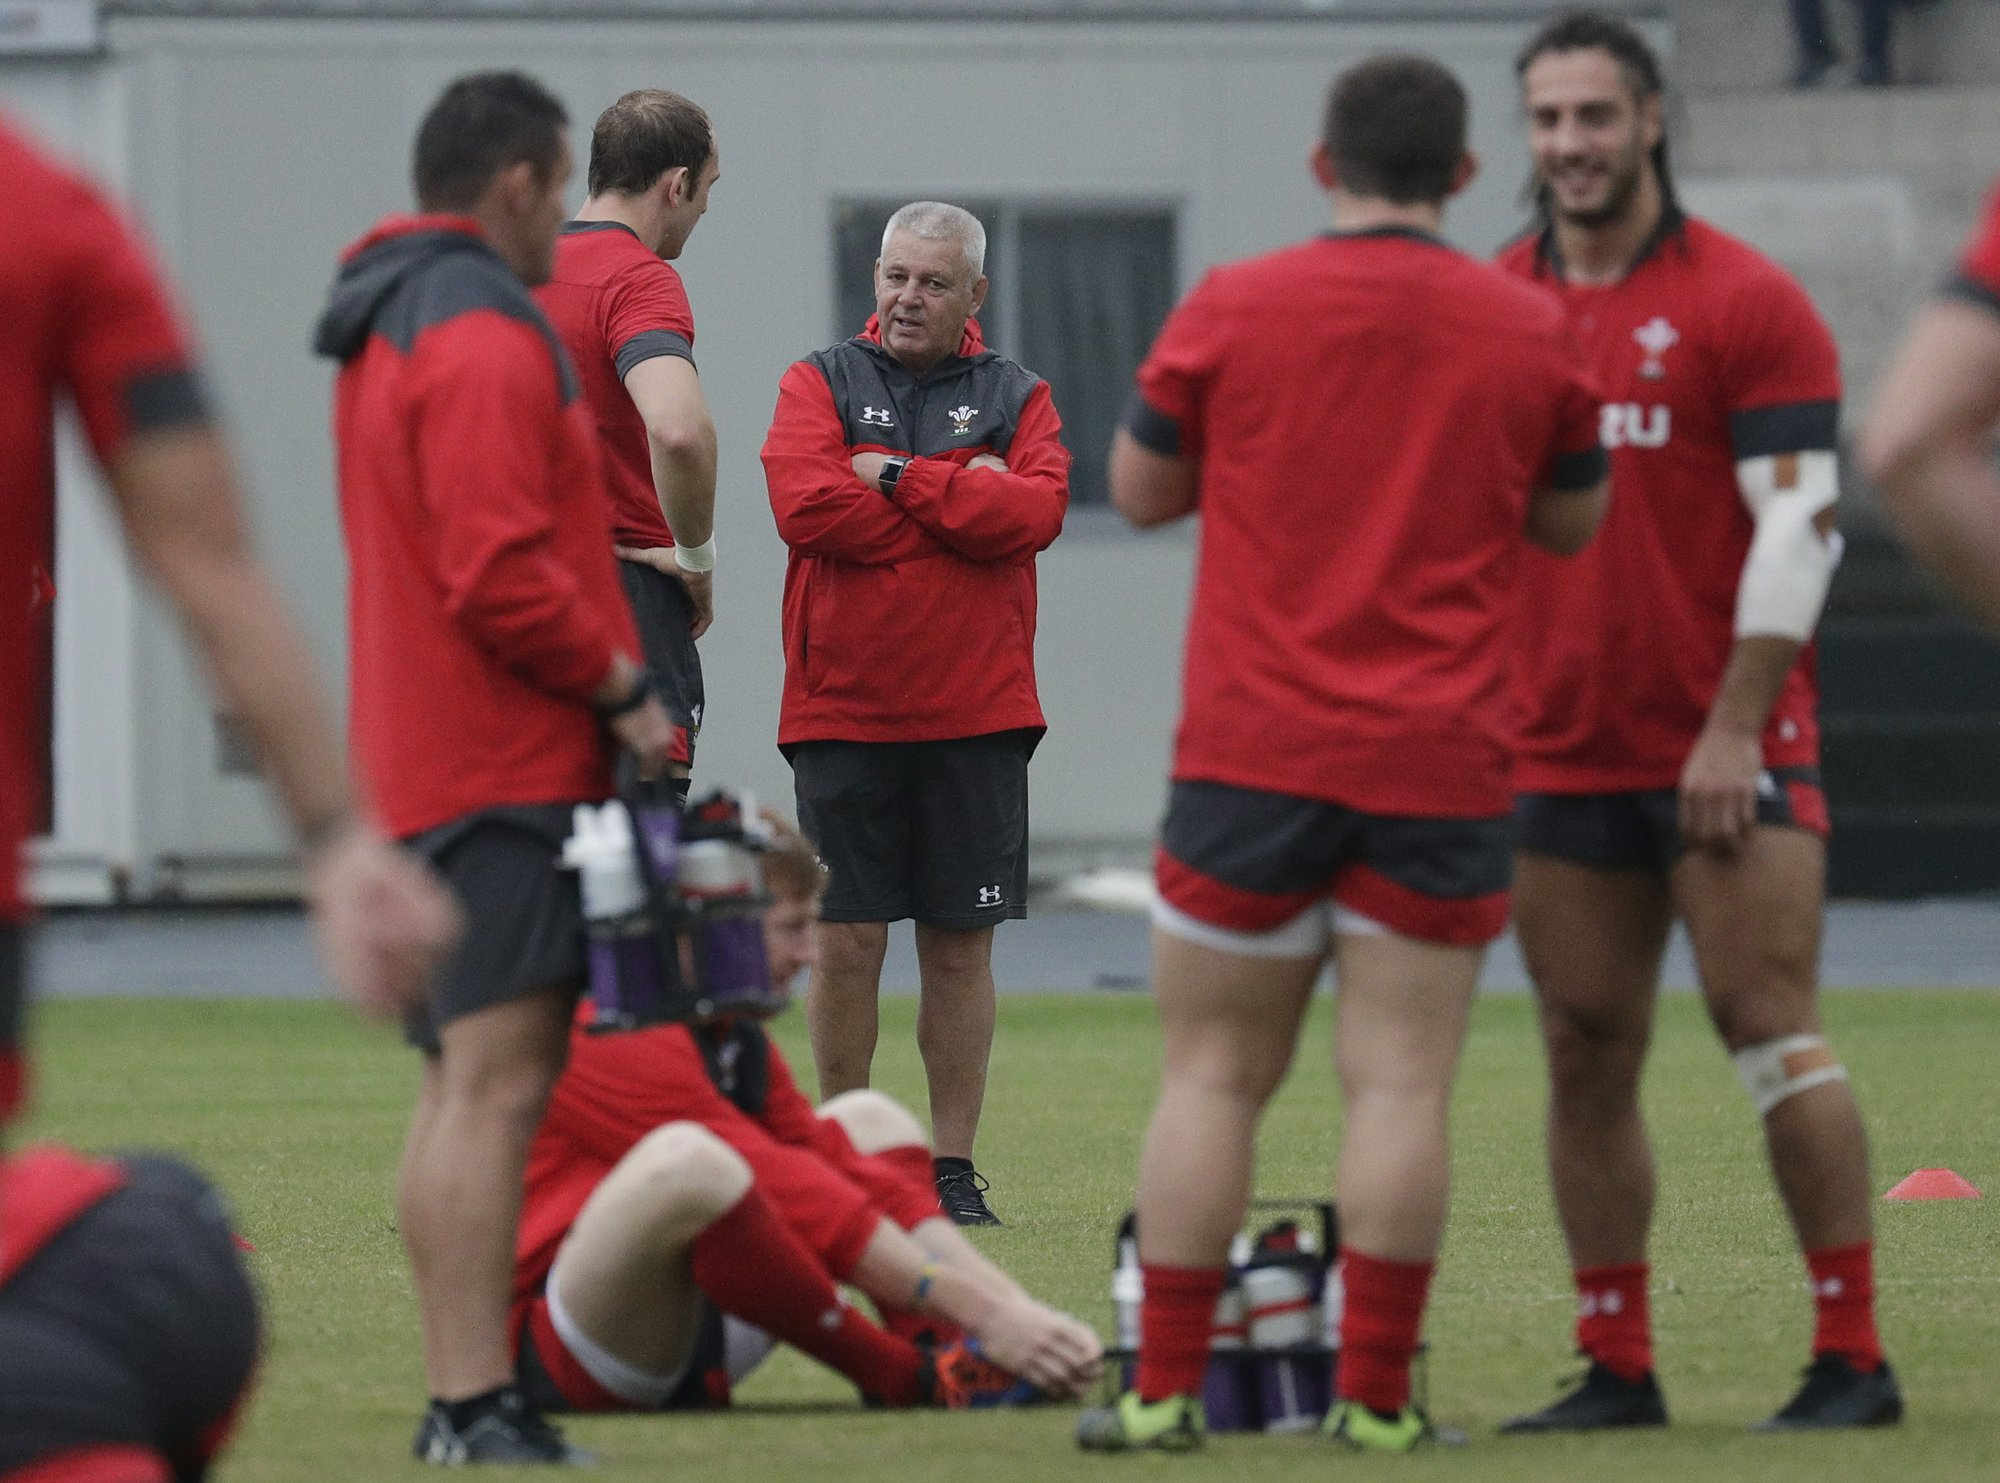 Hotel challenges pale in comparison to Boks threat for Welsh